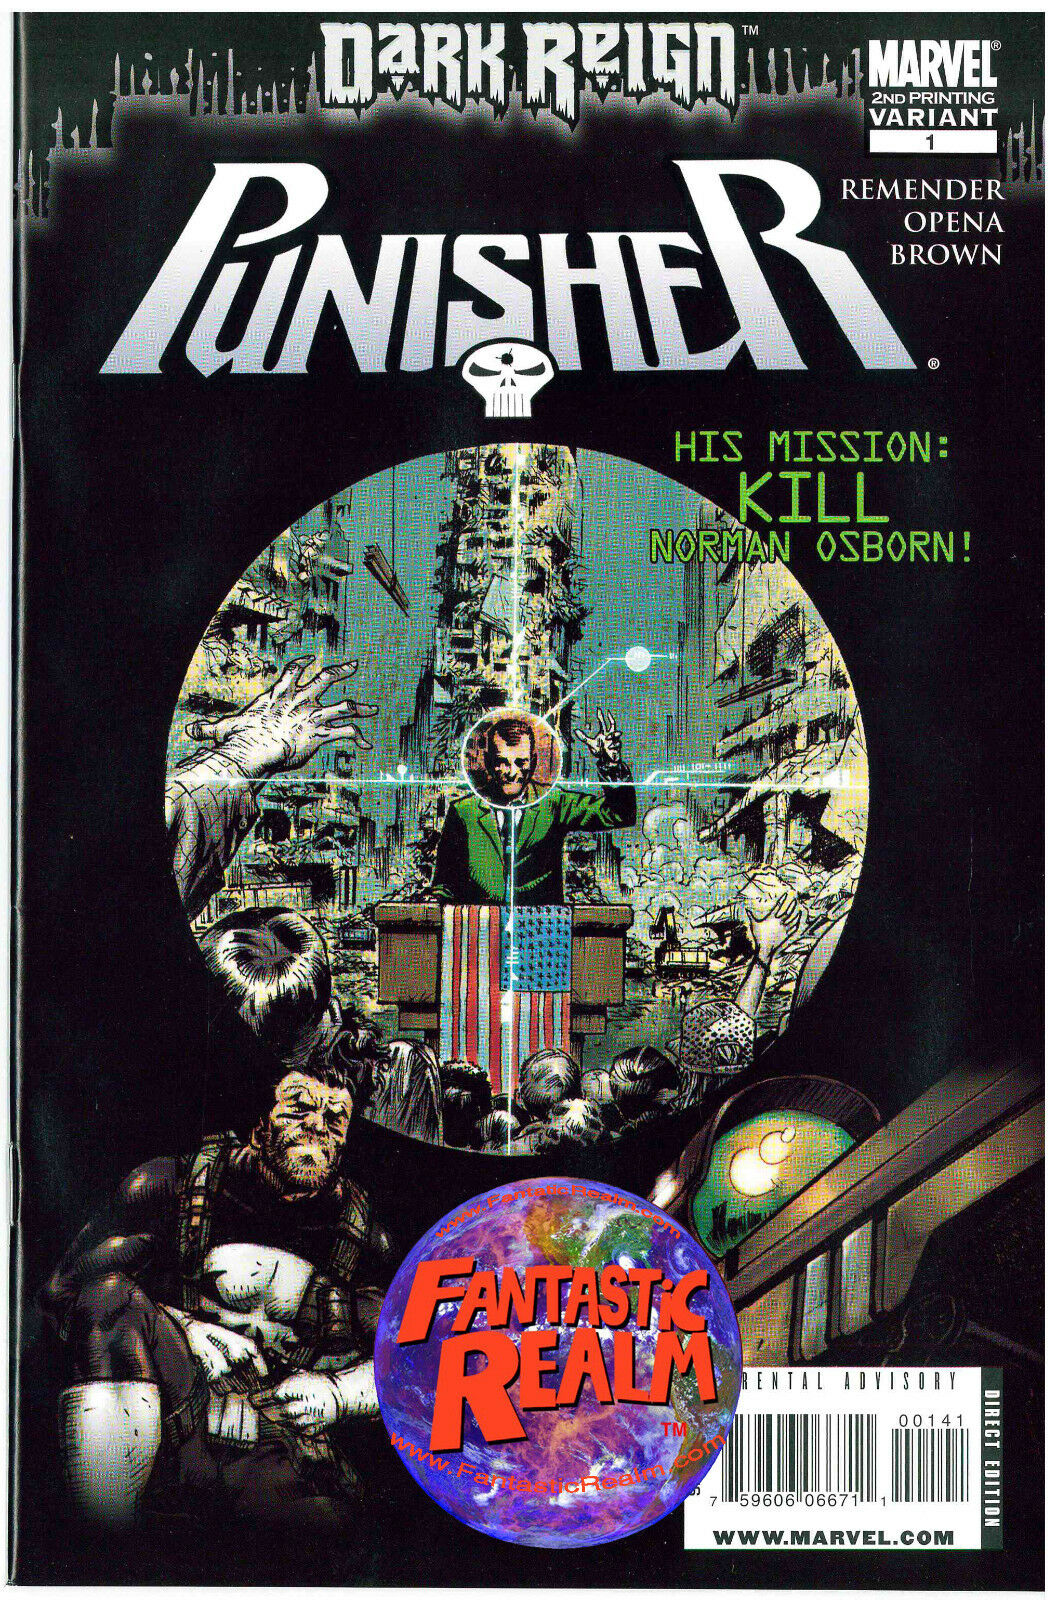 DARK REIGN: PUNISHER #1 2ND PRINT VARIANT MARVEL COMICS